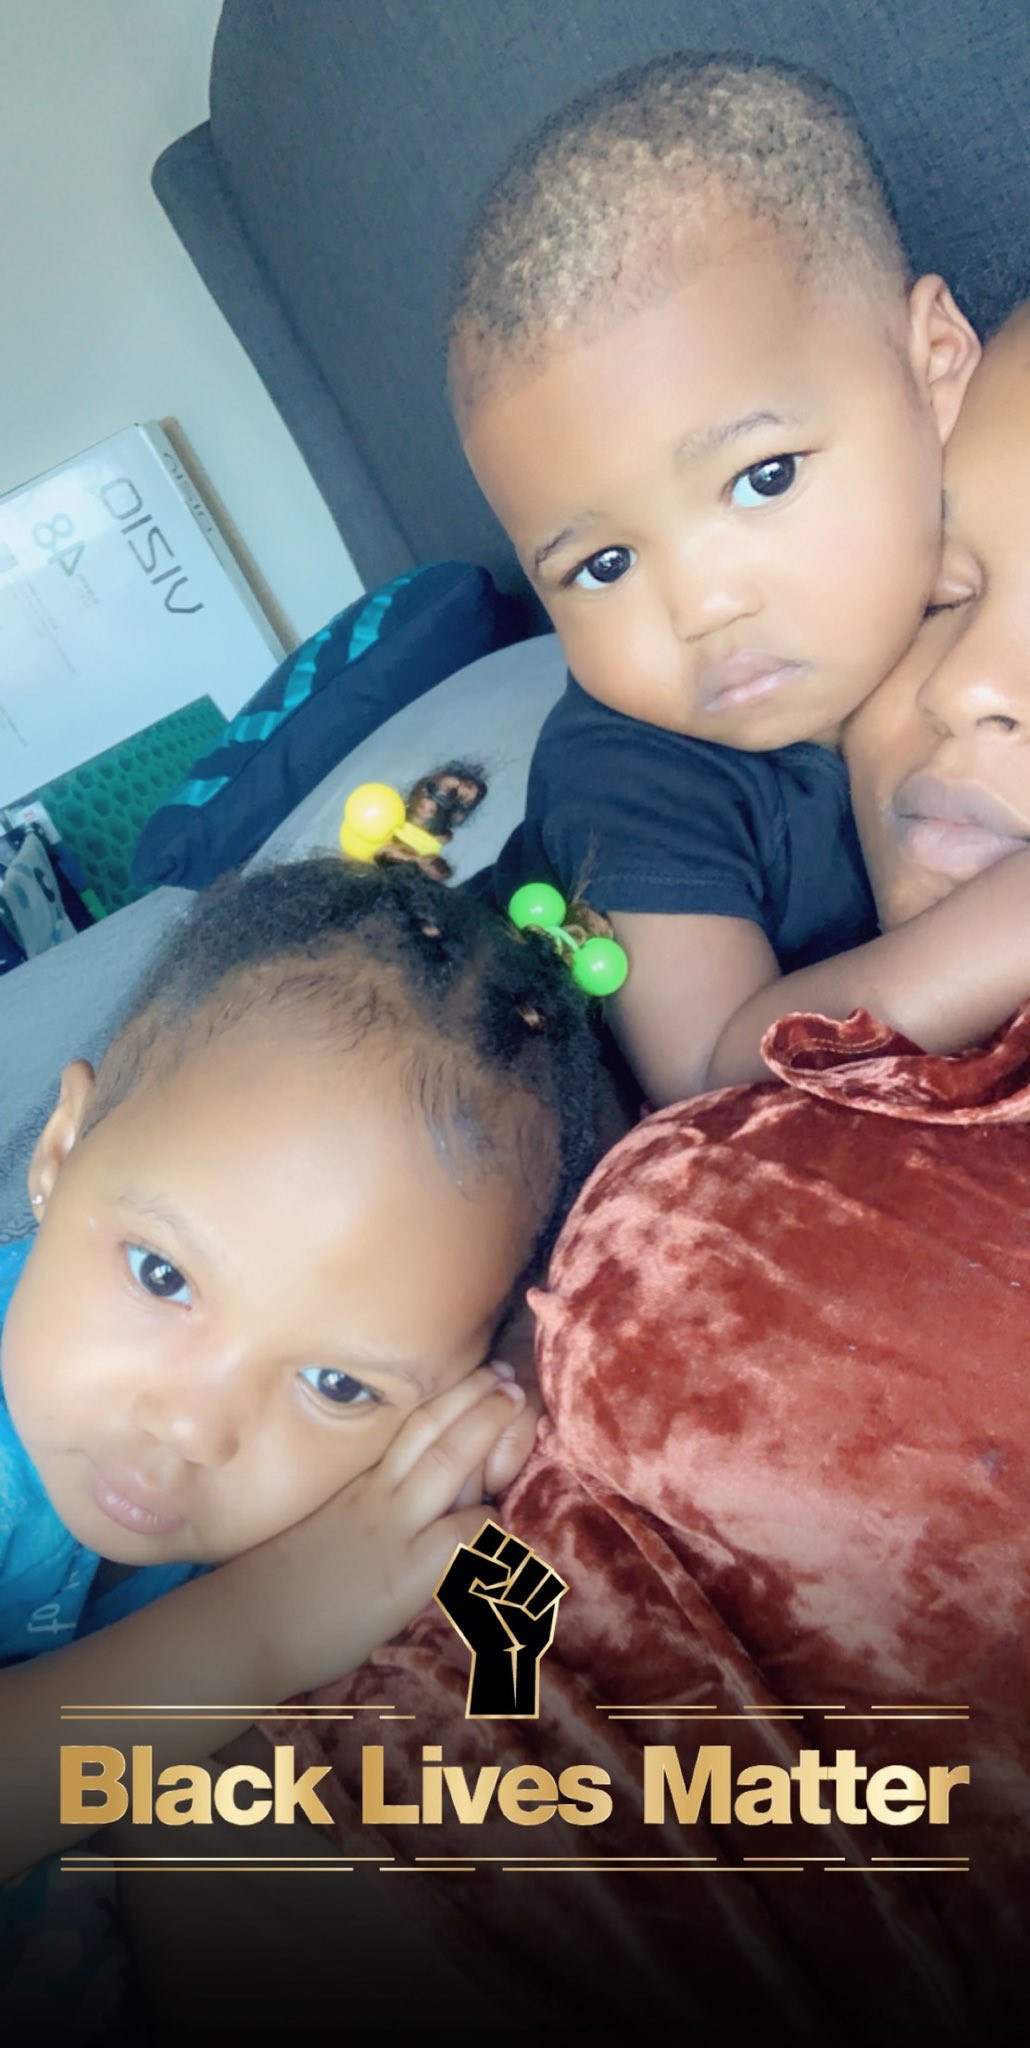 Emma Chukwugoziam Obi, Emma Nyra shares awesome photos of her twin children, Alexander and Alexandria